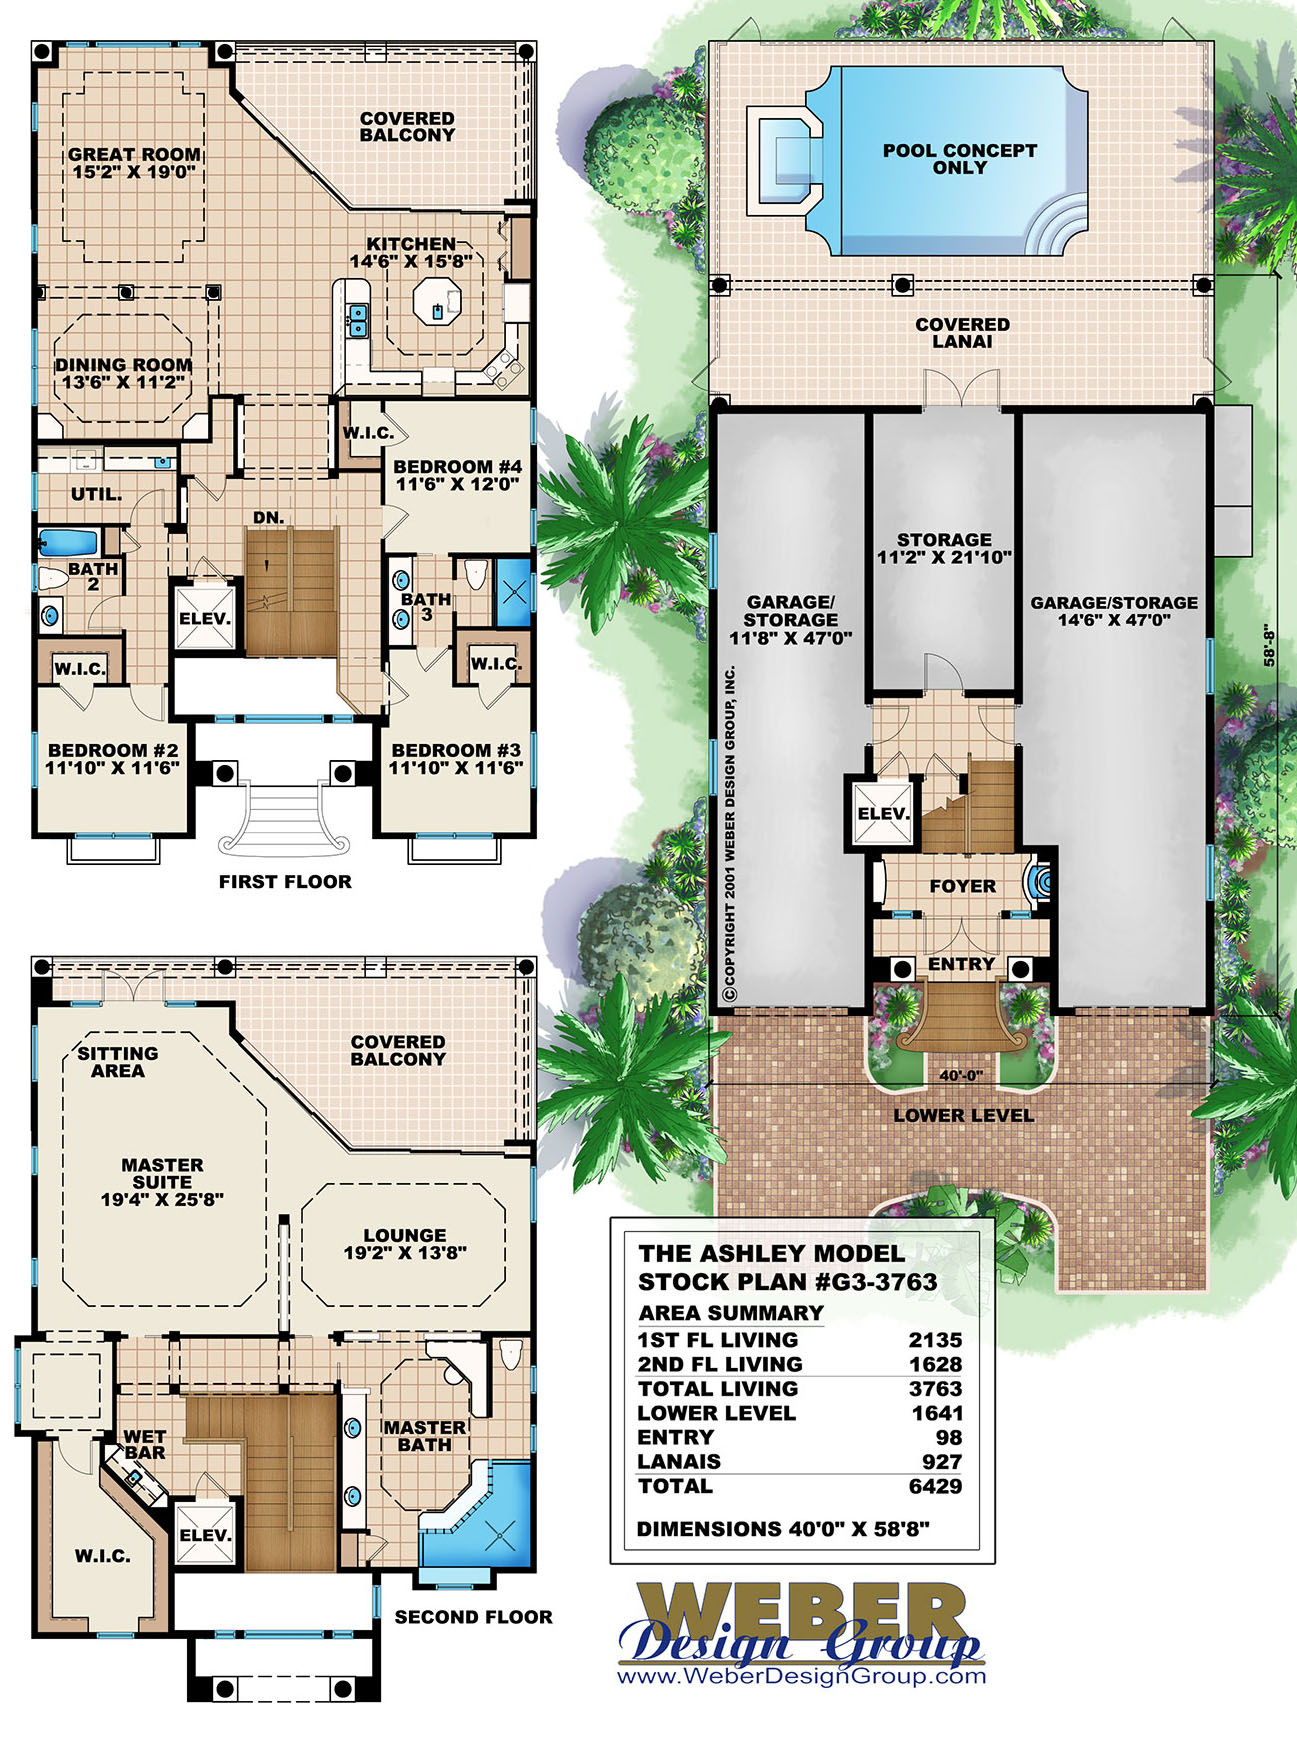 Mediterranean house plan coastal narrow lot beach home for 3 story beach house floor plans